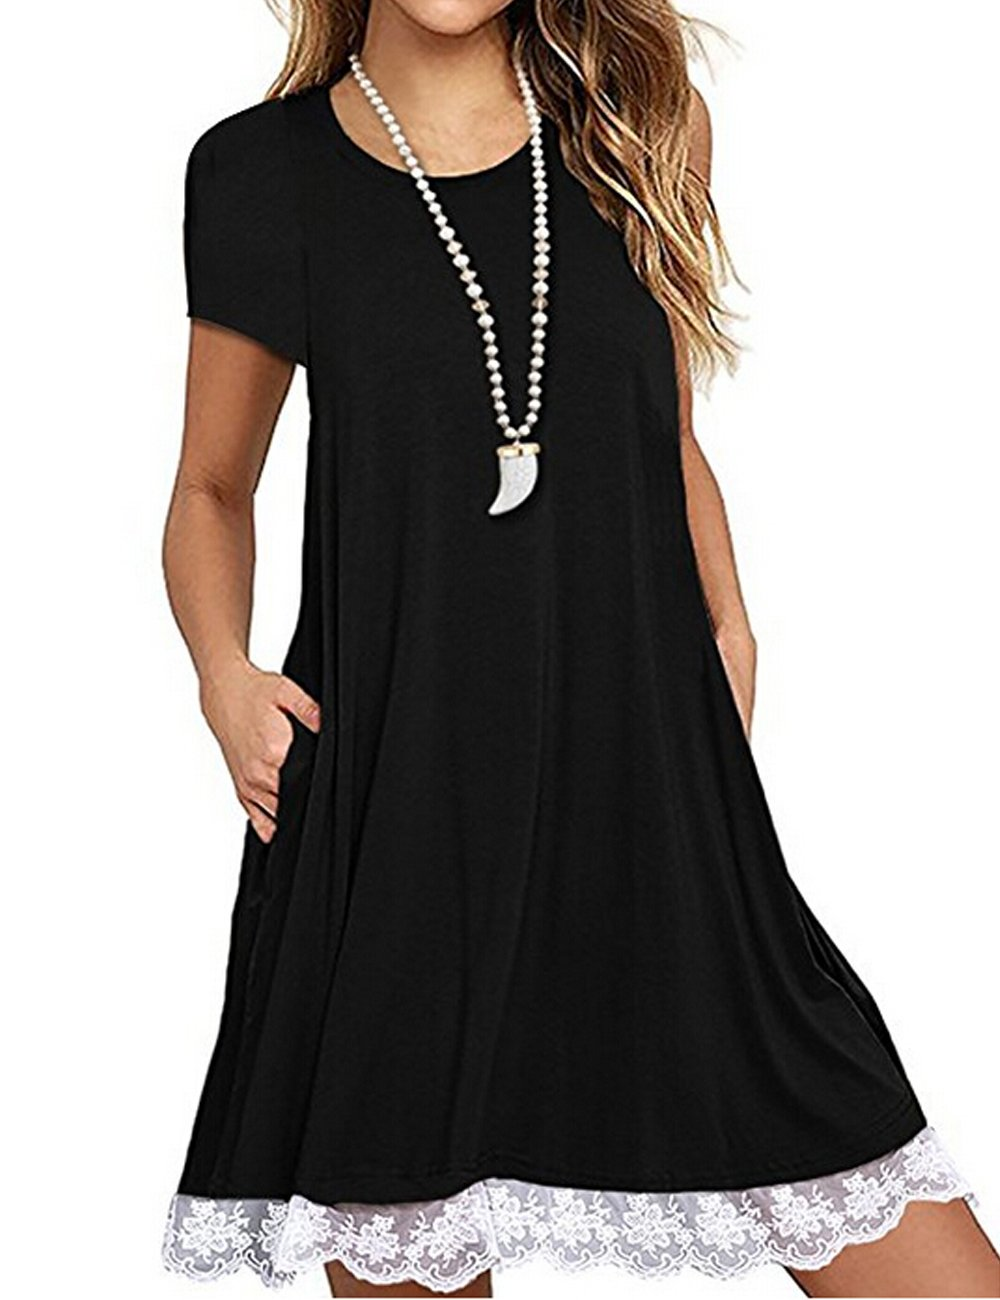 Halife Casual T Shirt Dress for Women Flowy Tunic Dress with Pockets Black,L